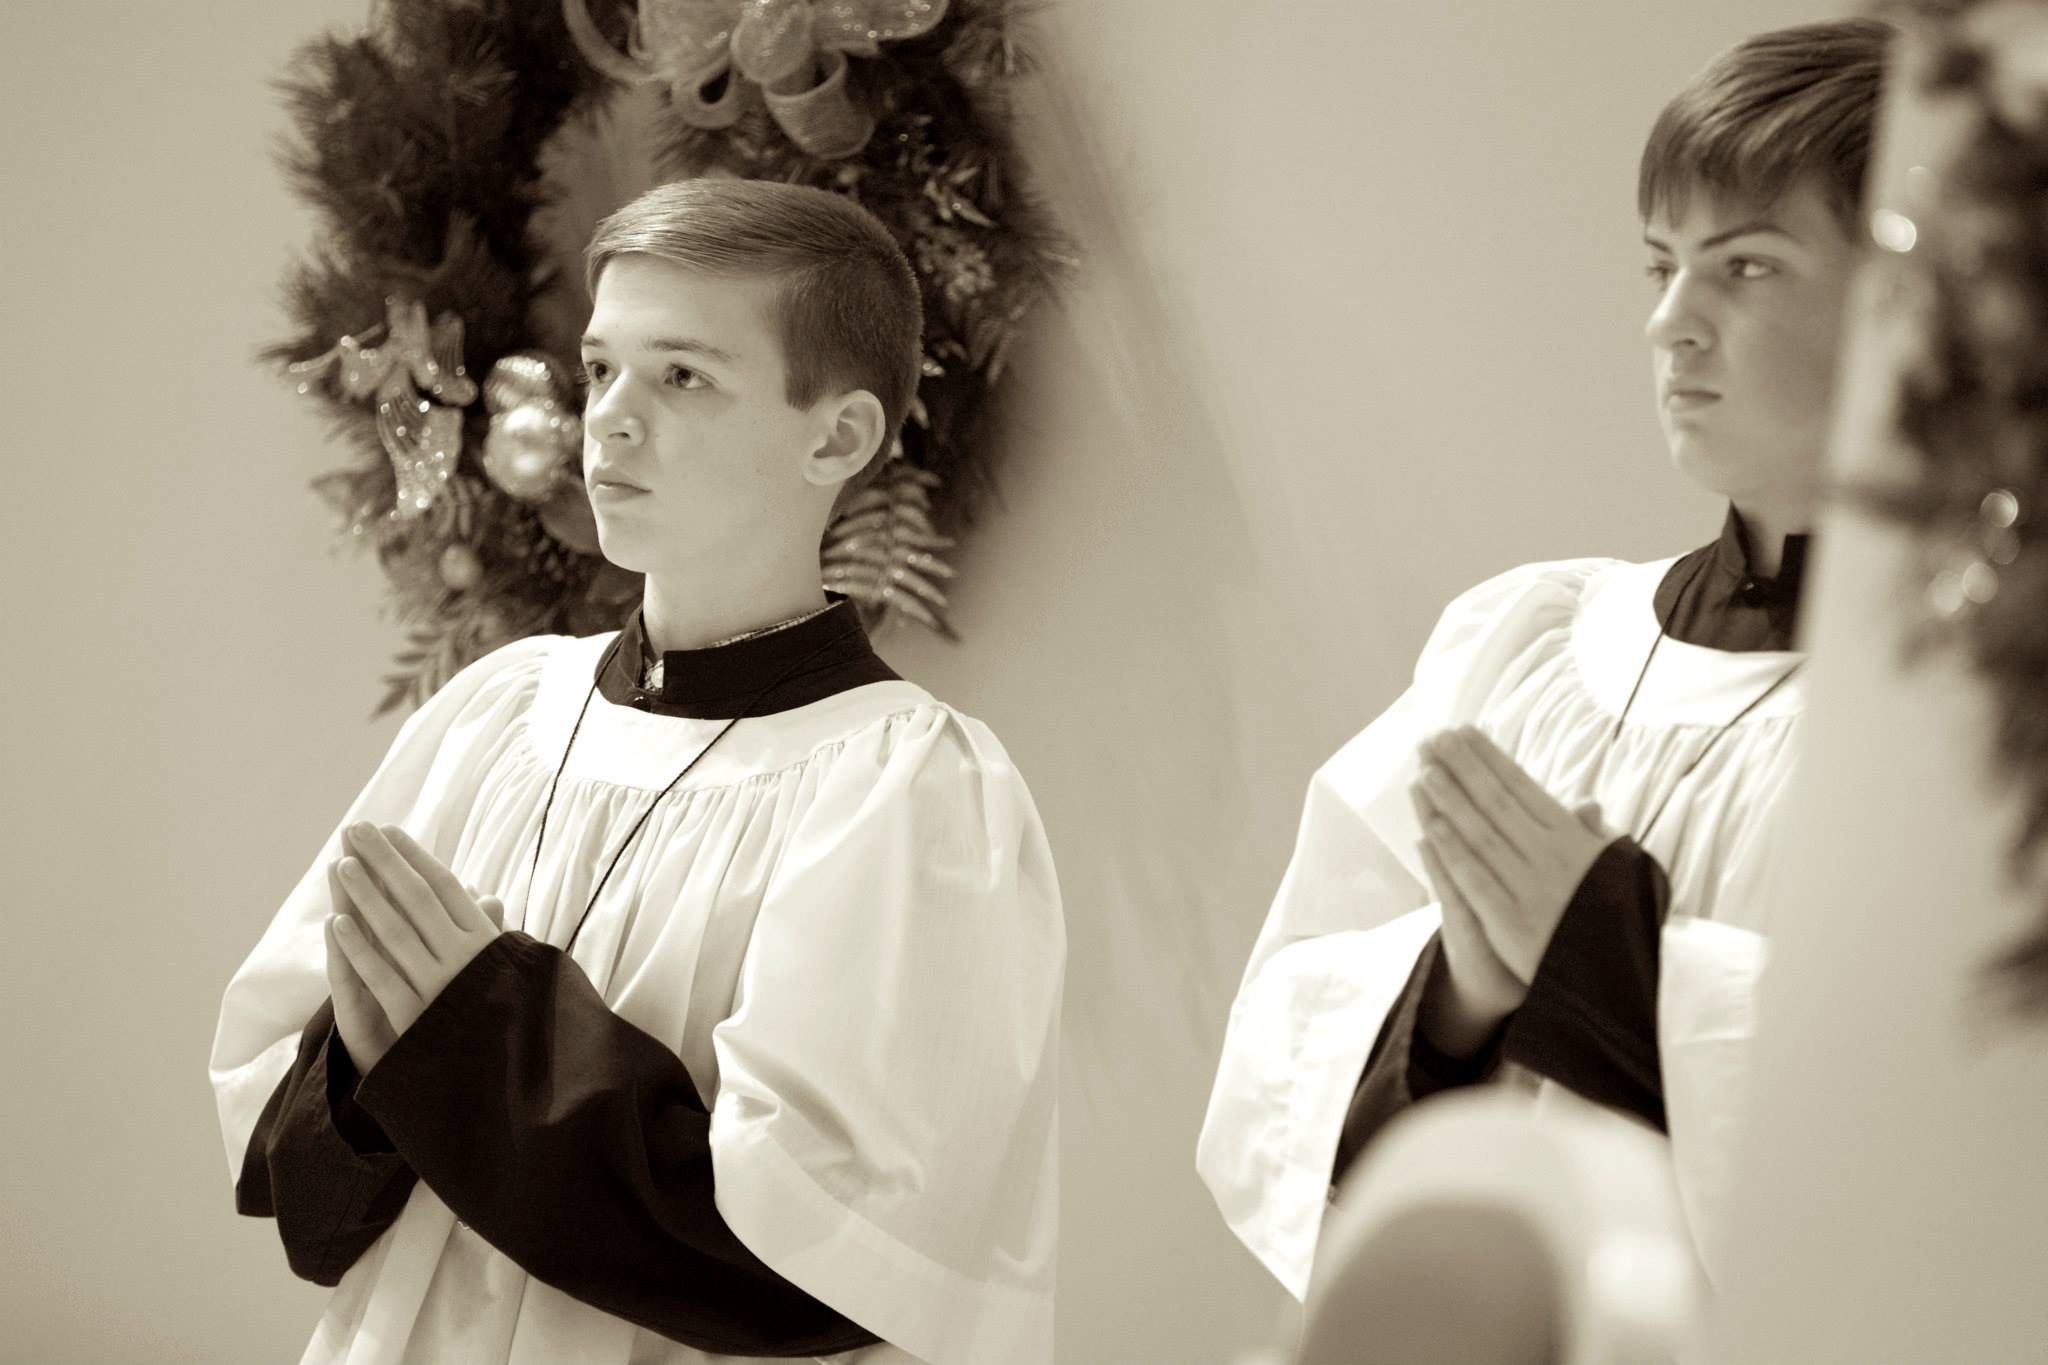 Joseph and Jacob. Jacob is in charge of the altar servers and liturgical overseer for Adorations at Encounter.